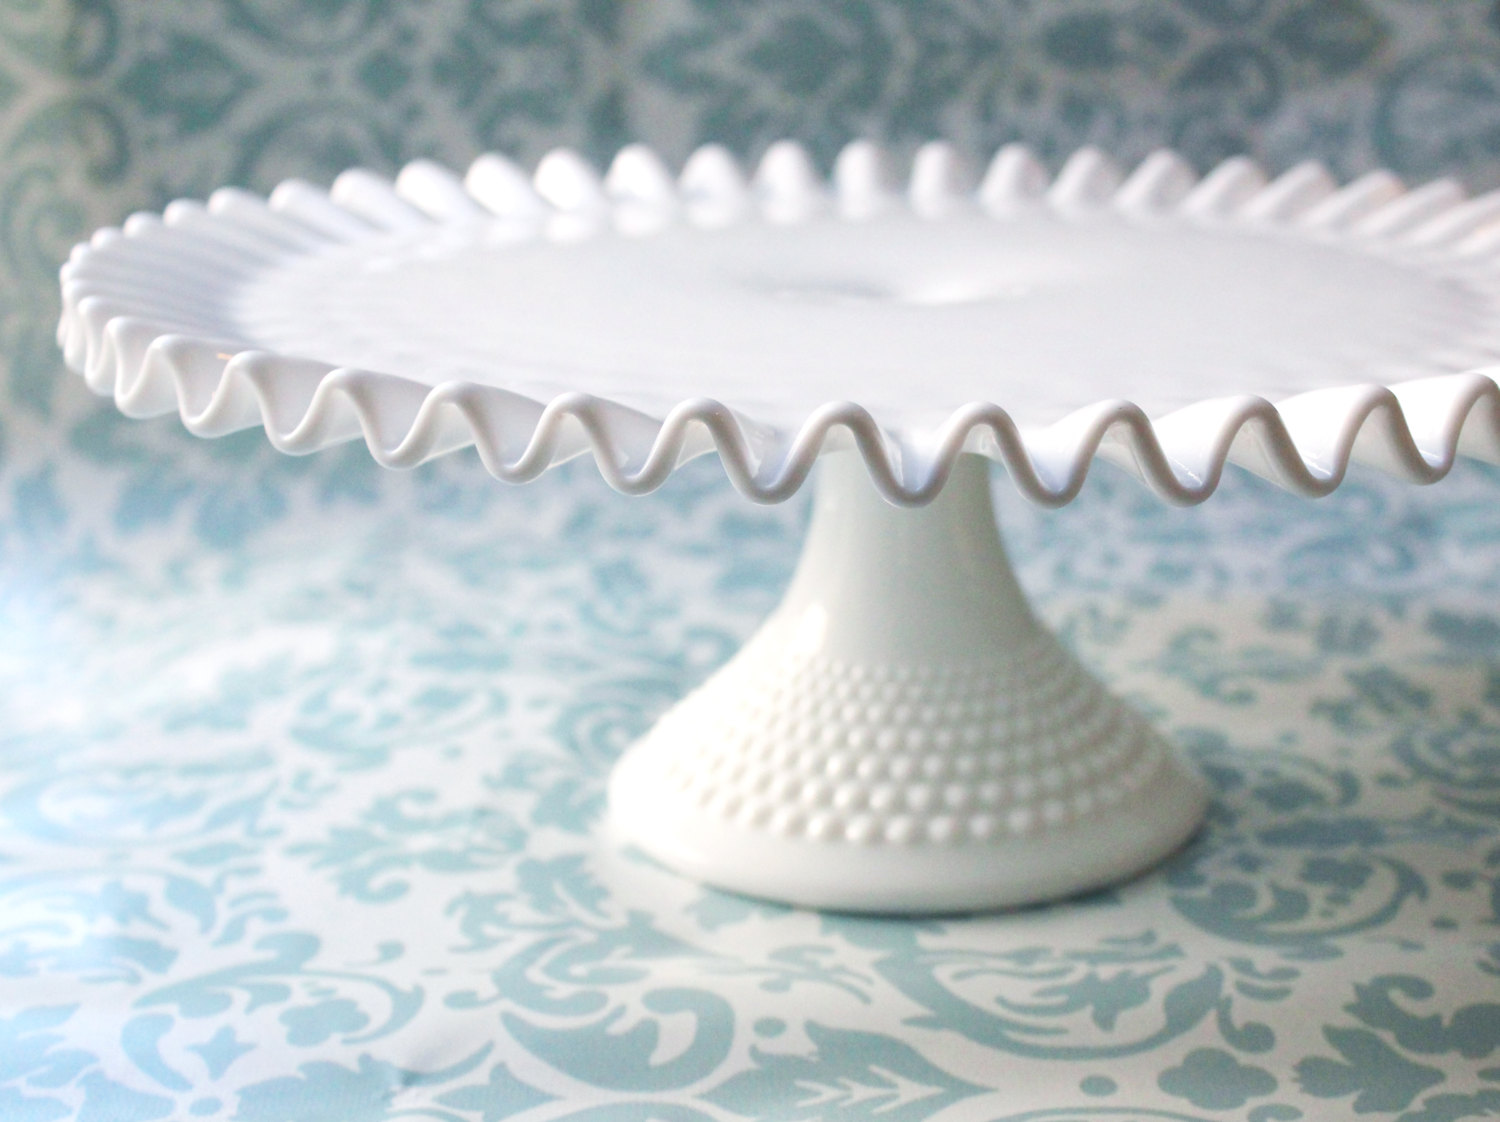 Fenton Company hobnail milk glass cake stand.  Image from  Roche Studio Vintage  on Etsy.